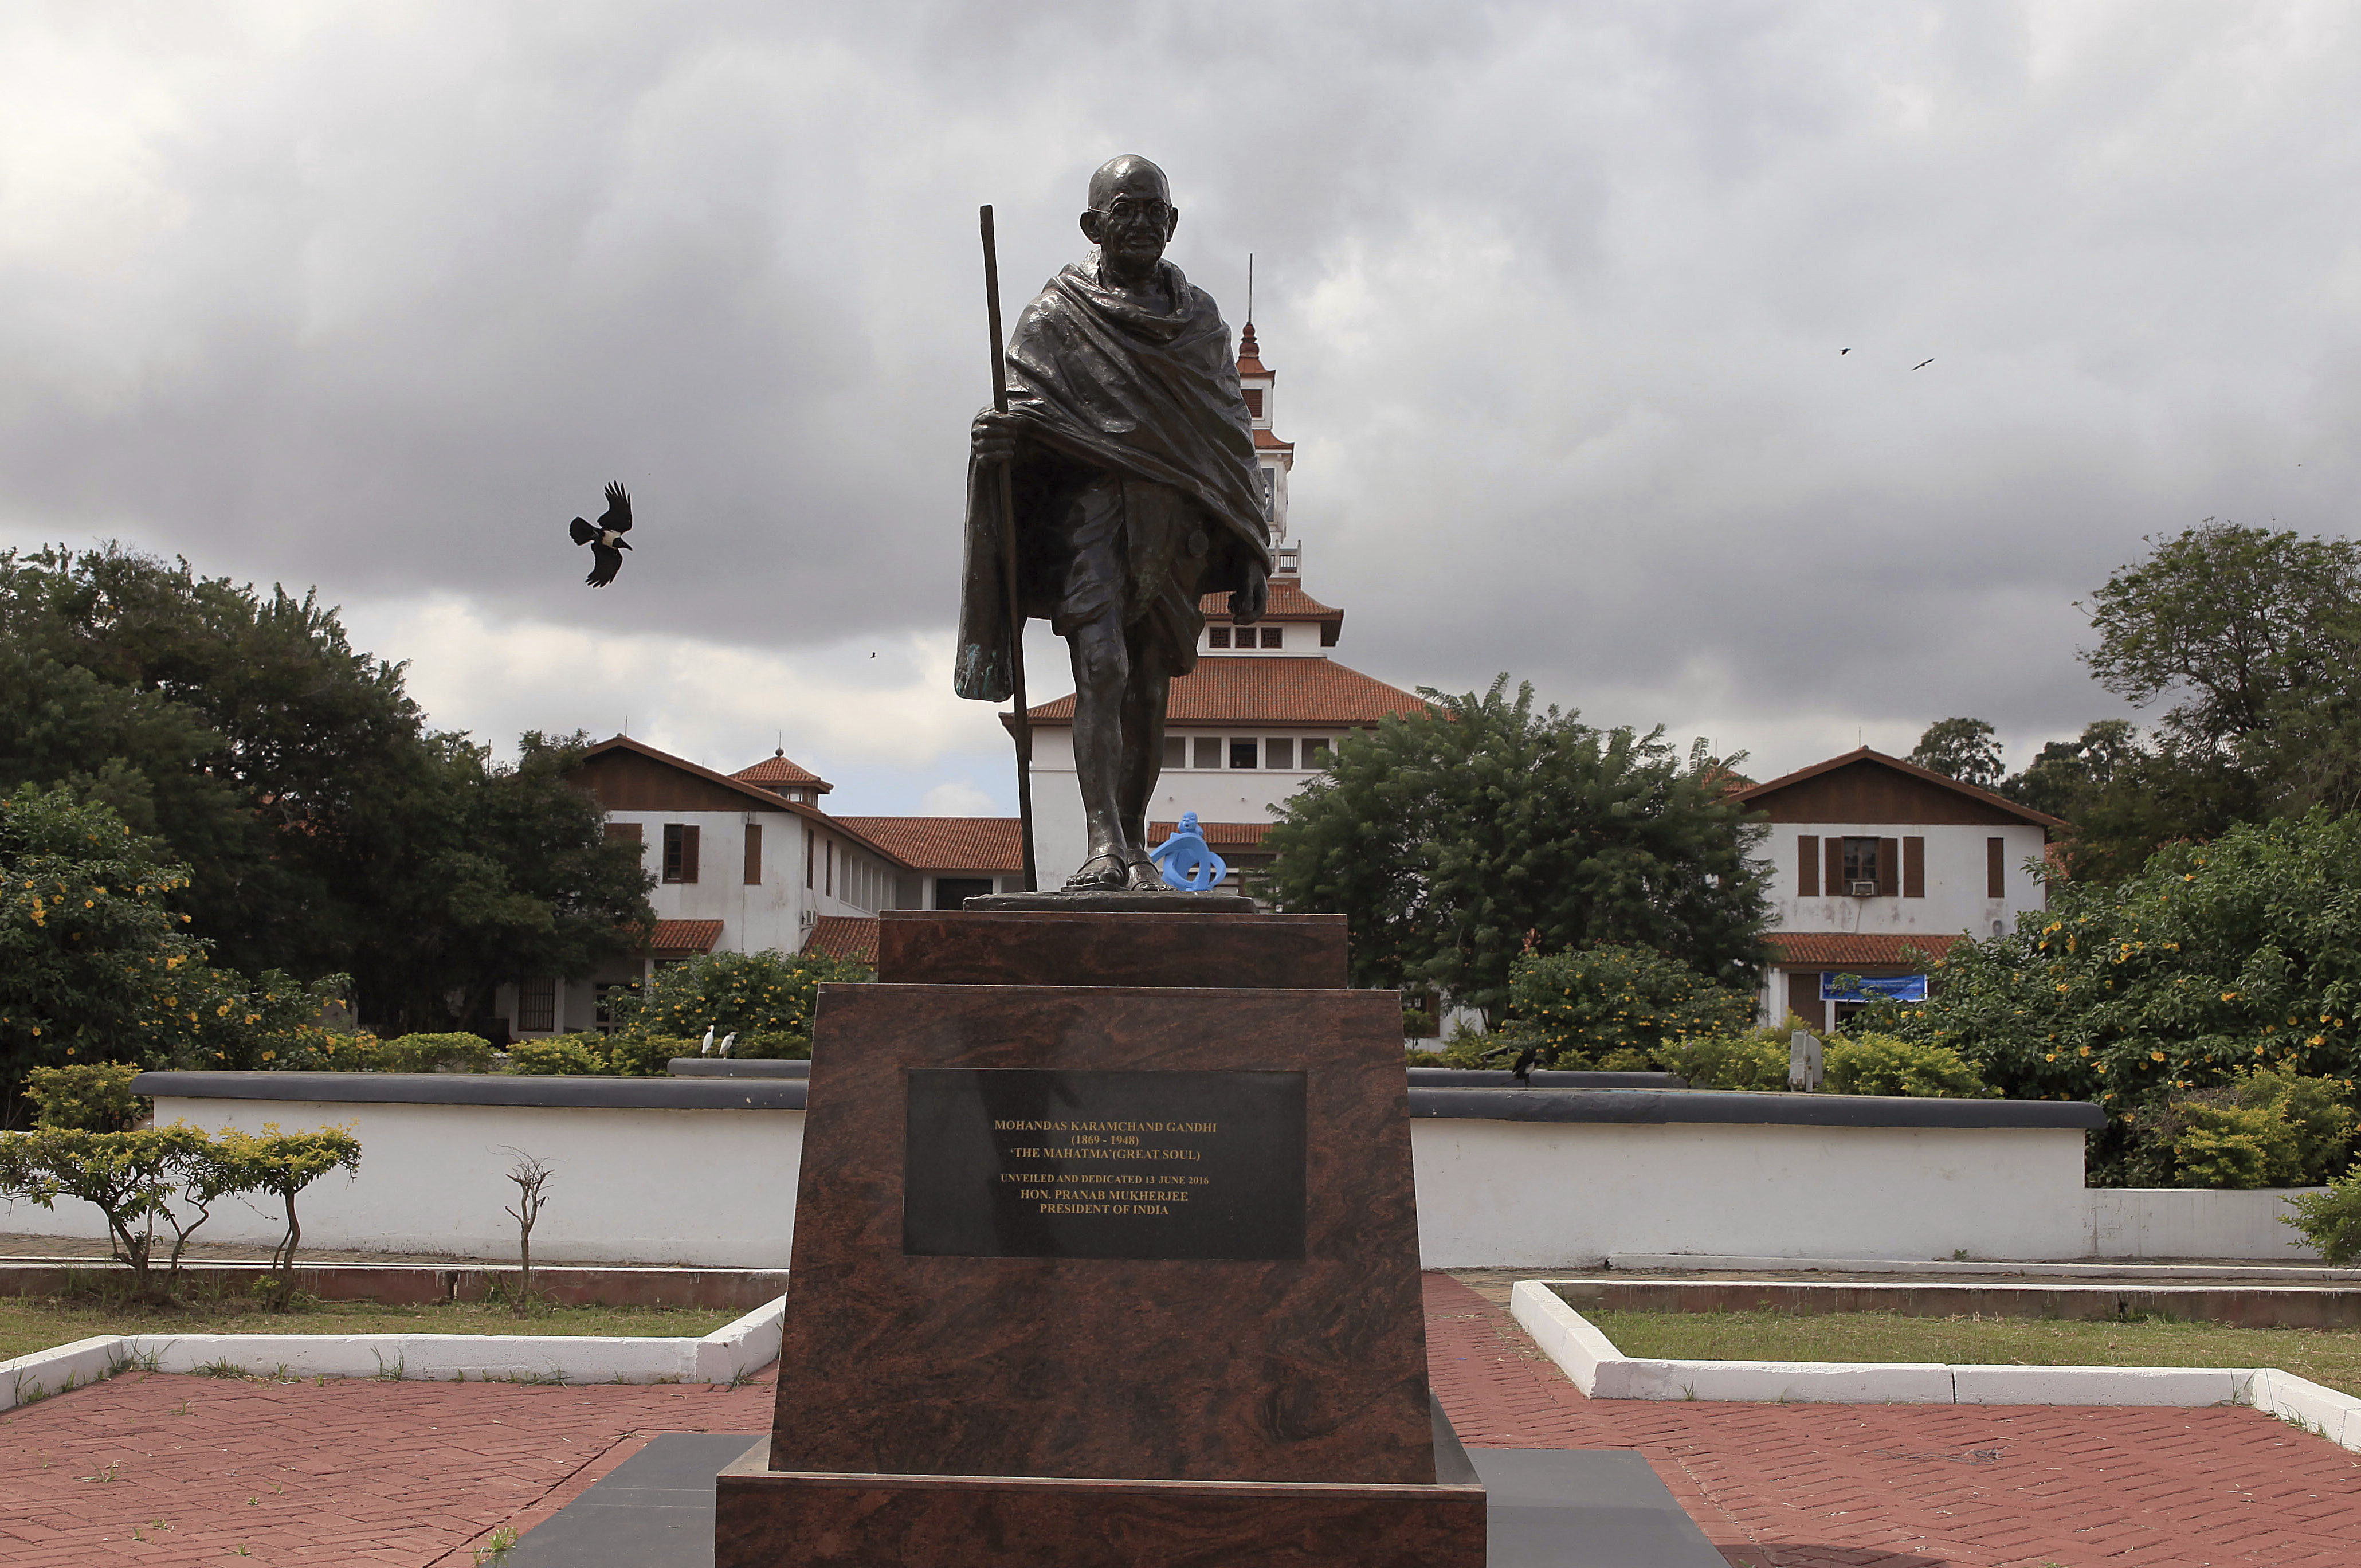 Malawi is the latest African country where a Gandhi statue isn't welcome